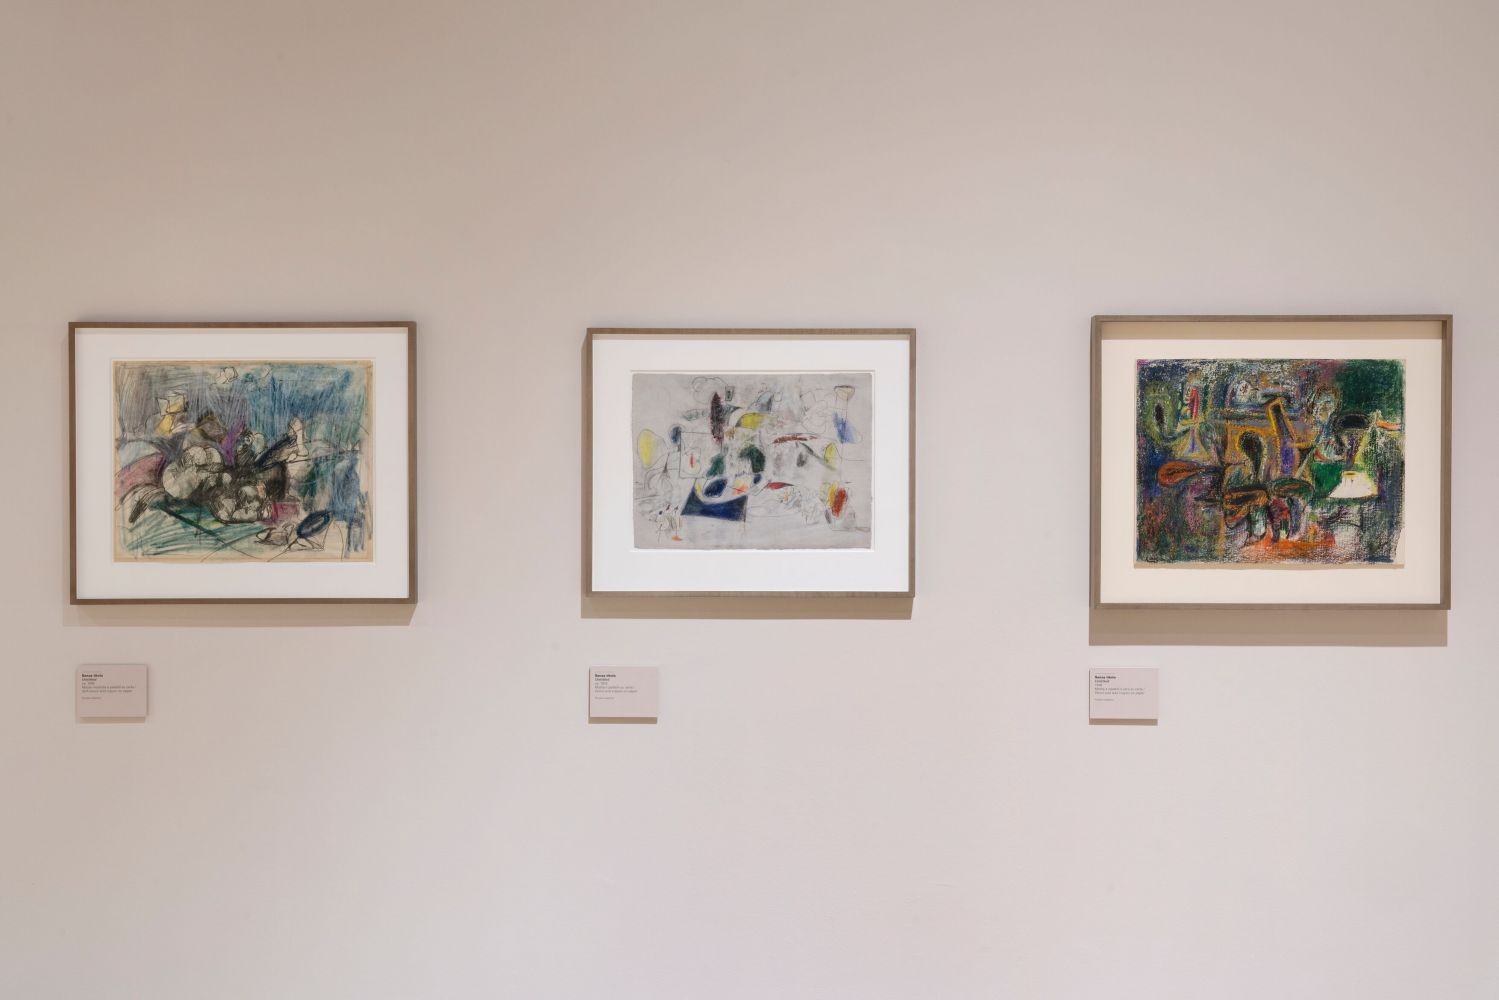 Installation photograph showing a three abstract drawings by Gorky from the 1940s